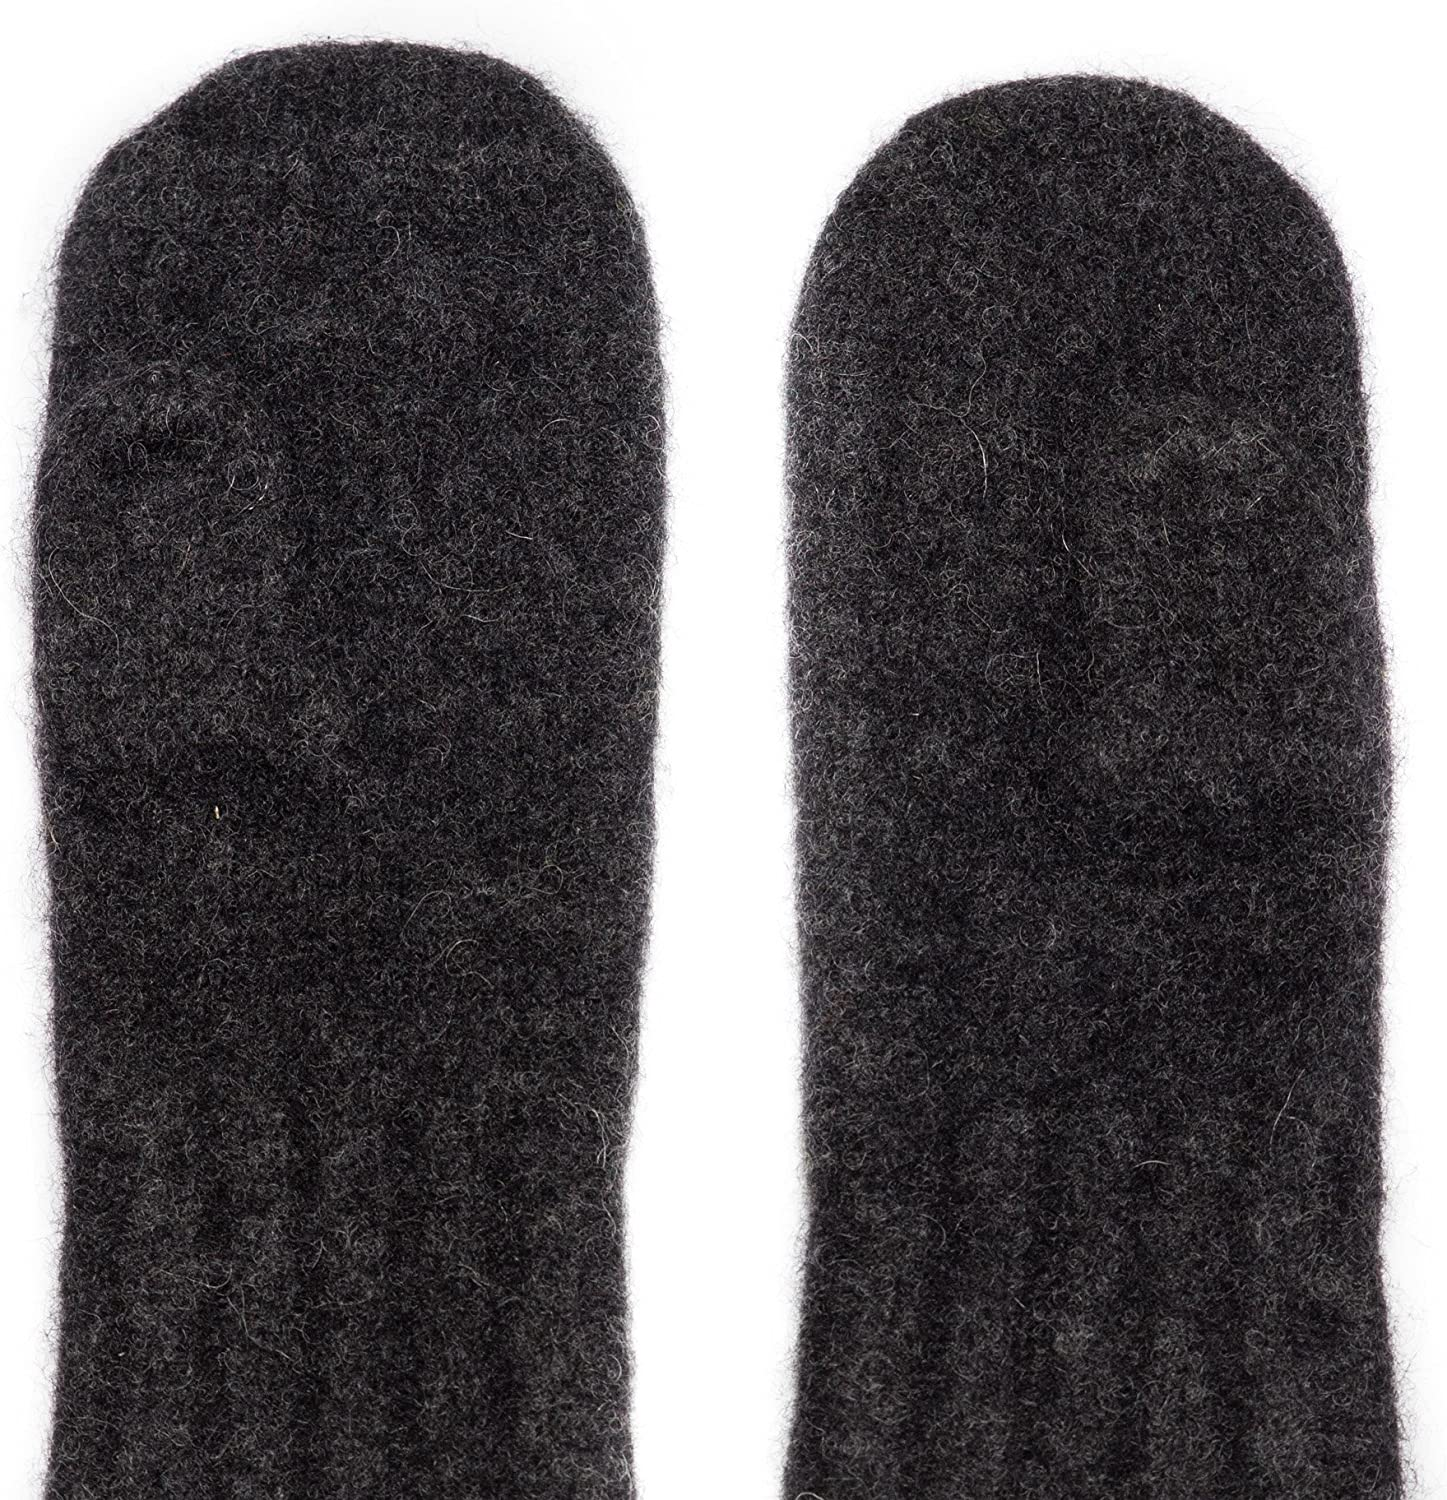 Dachstein Woolwear 100% Extra Warm Austrian Boiled Wool Alpine Mittens in Many Vibrant Colors